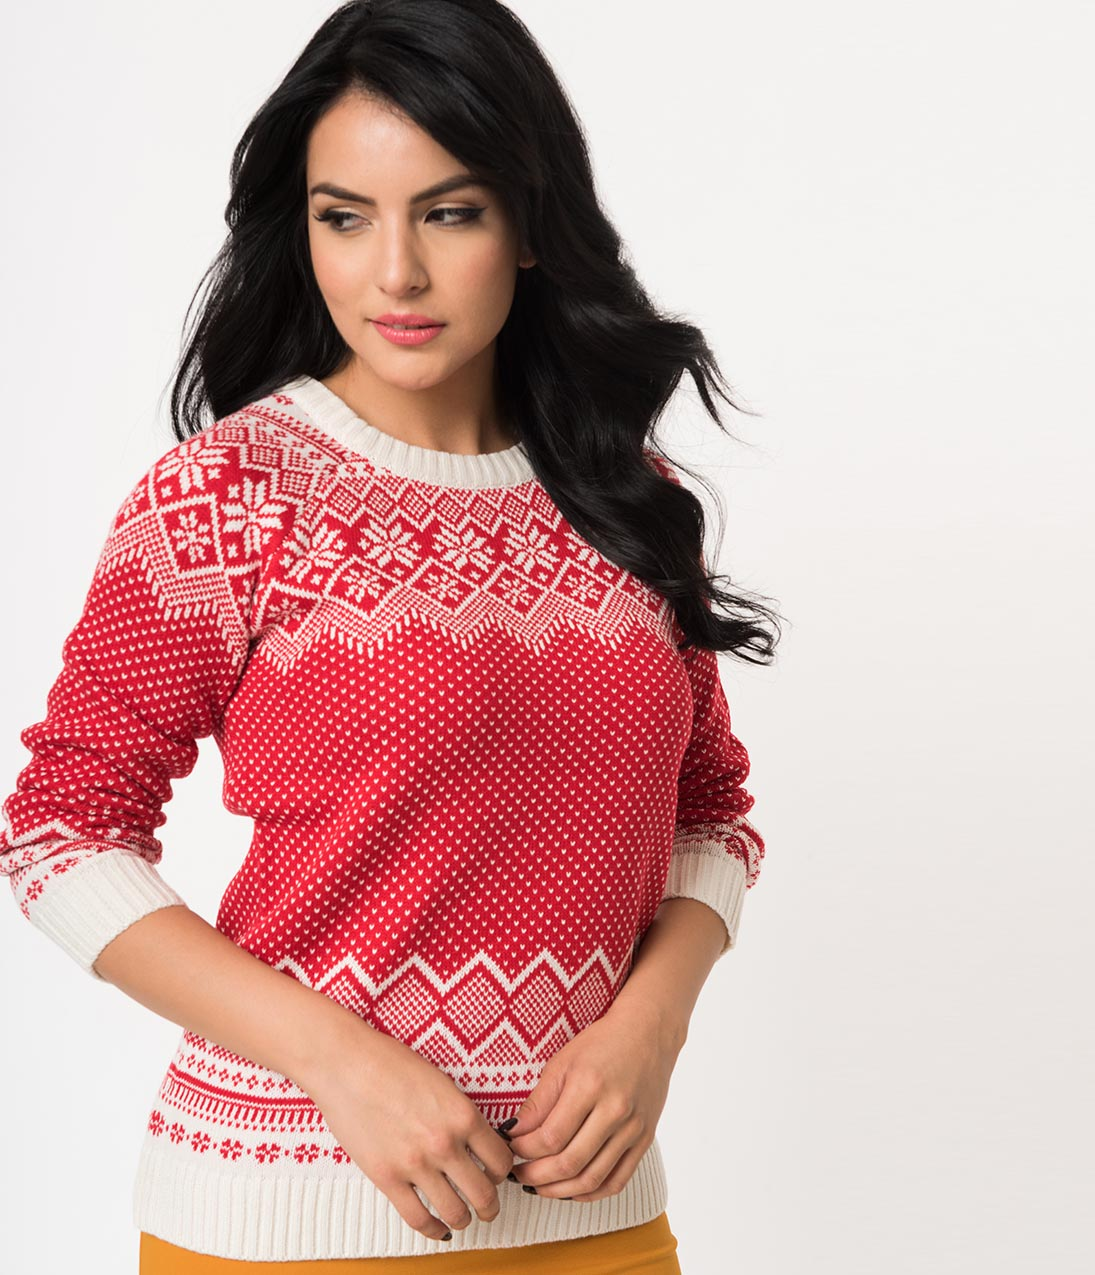 Authentic Natural 1950s Makeup History and Tutorial Vintage Style Red  White Snowflake Long Sleeve Knit Sweater $42.00 AT vintagedancer.com